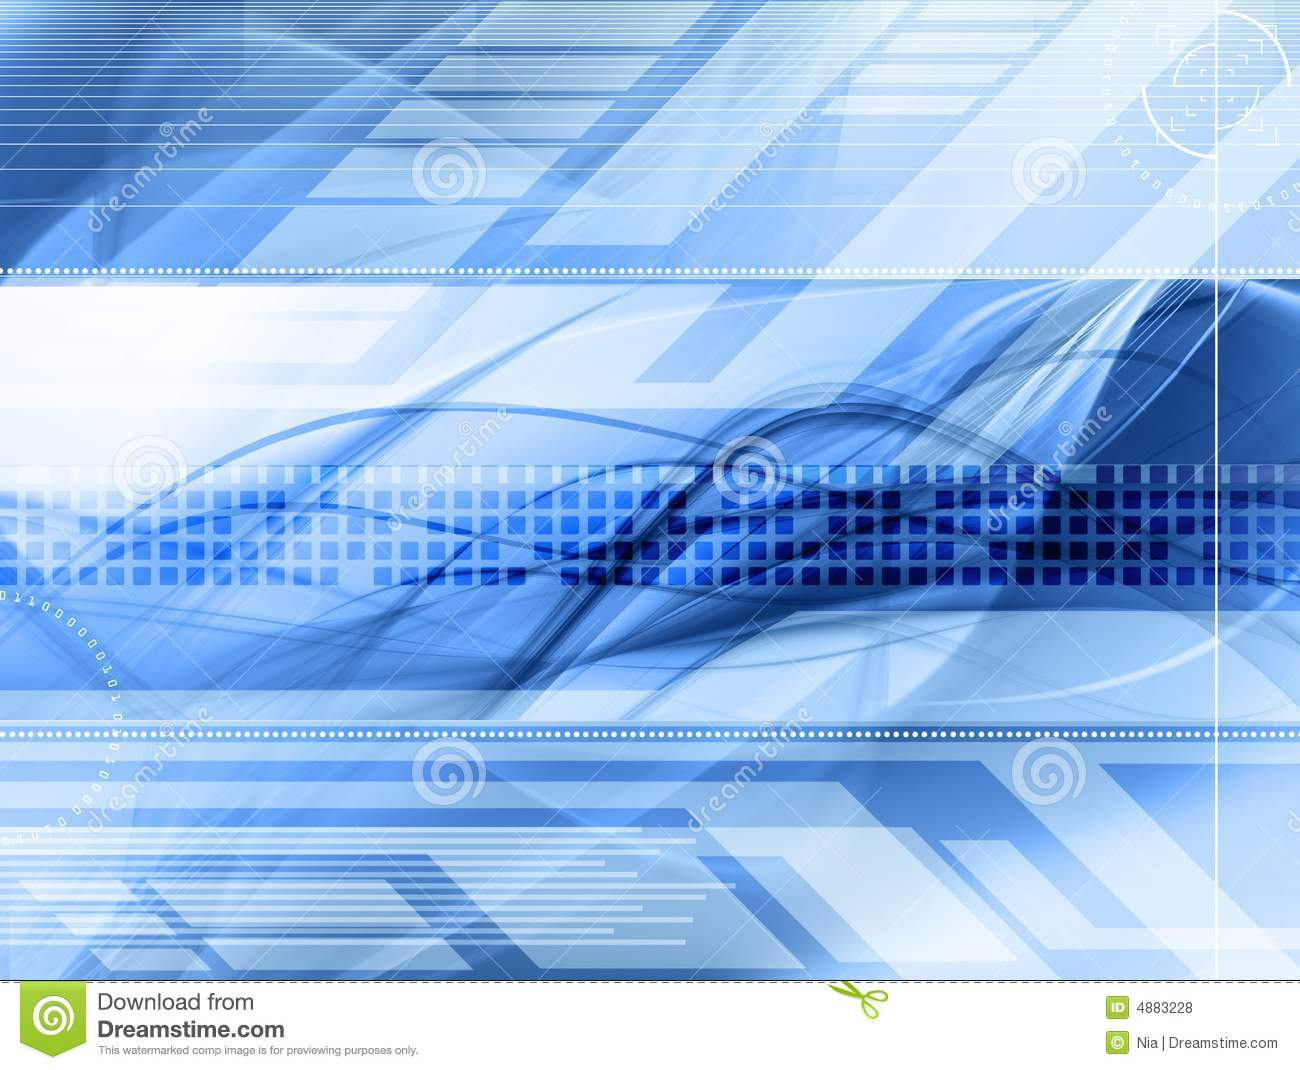 Royalty Free Stock Technology Images